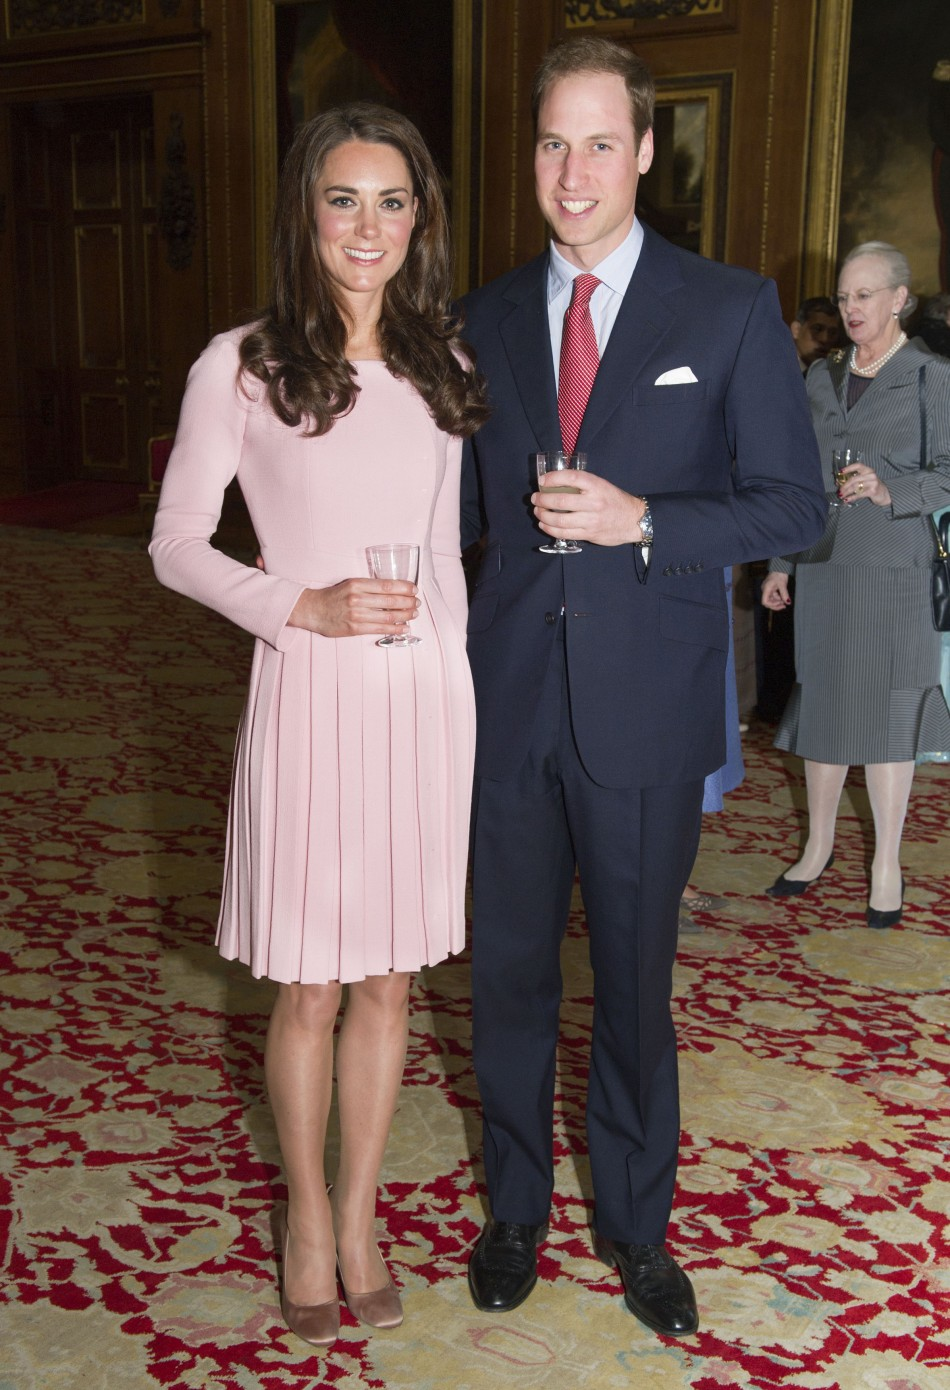 Britain's Prince William and Catherine, Duchess of Cambridge pose during a reception before Queen Elizabeth's Diamond Jubilee lunch at Windsor Castle in London